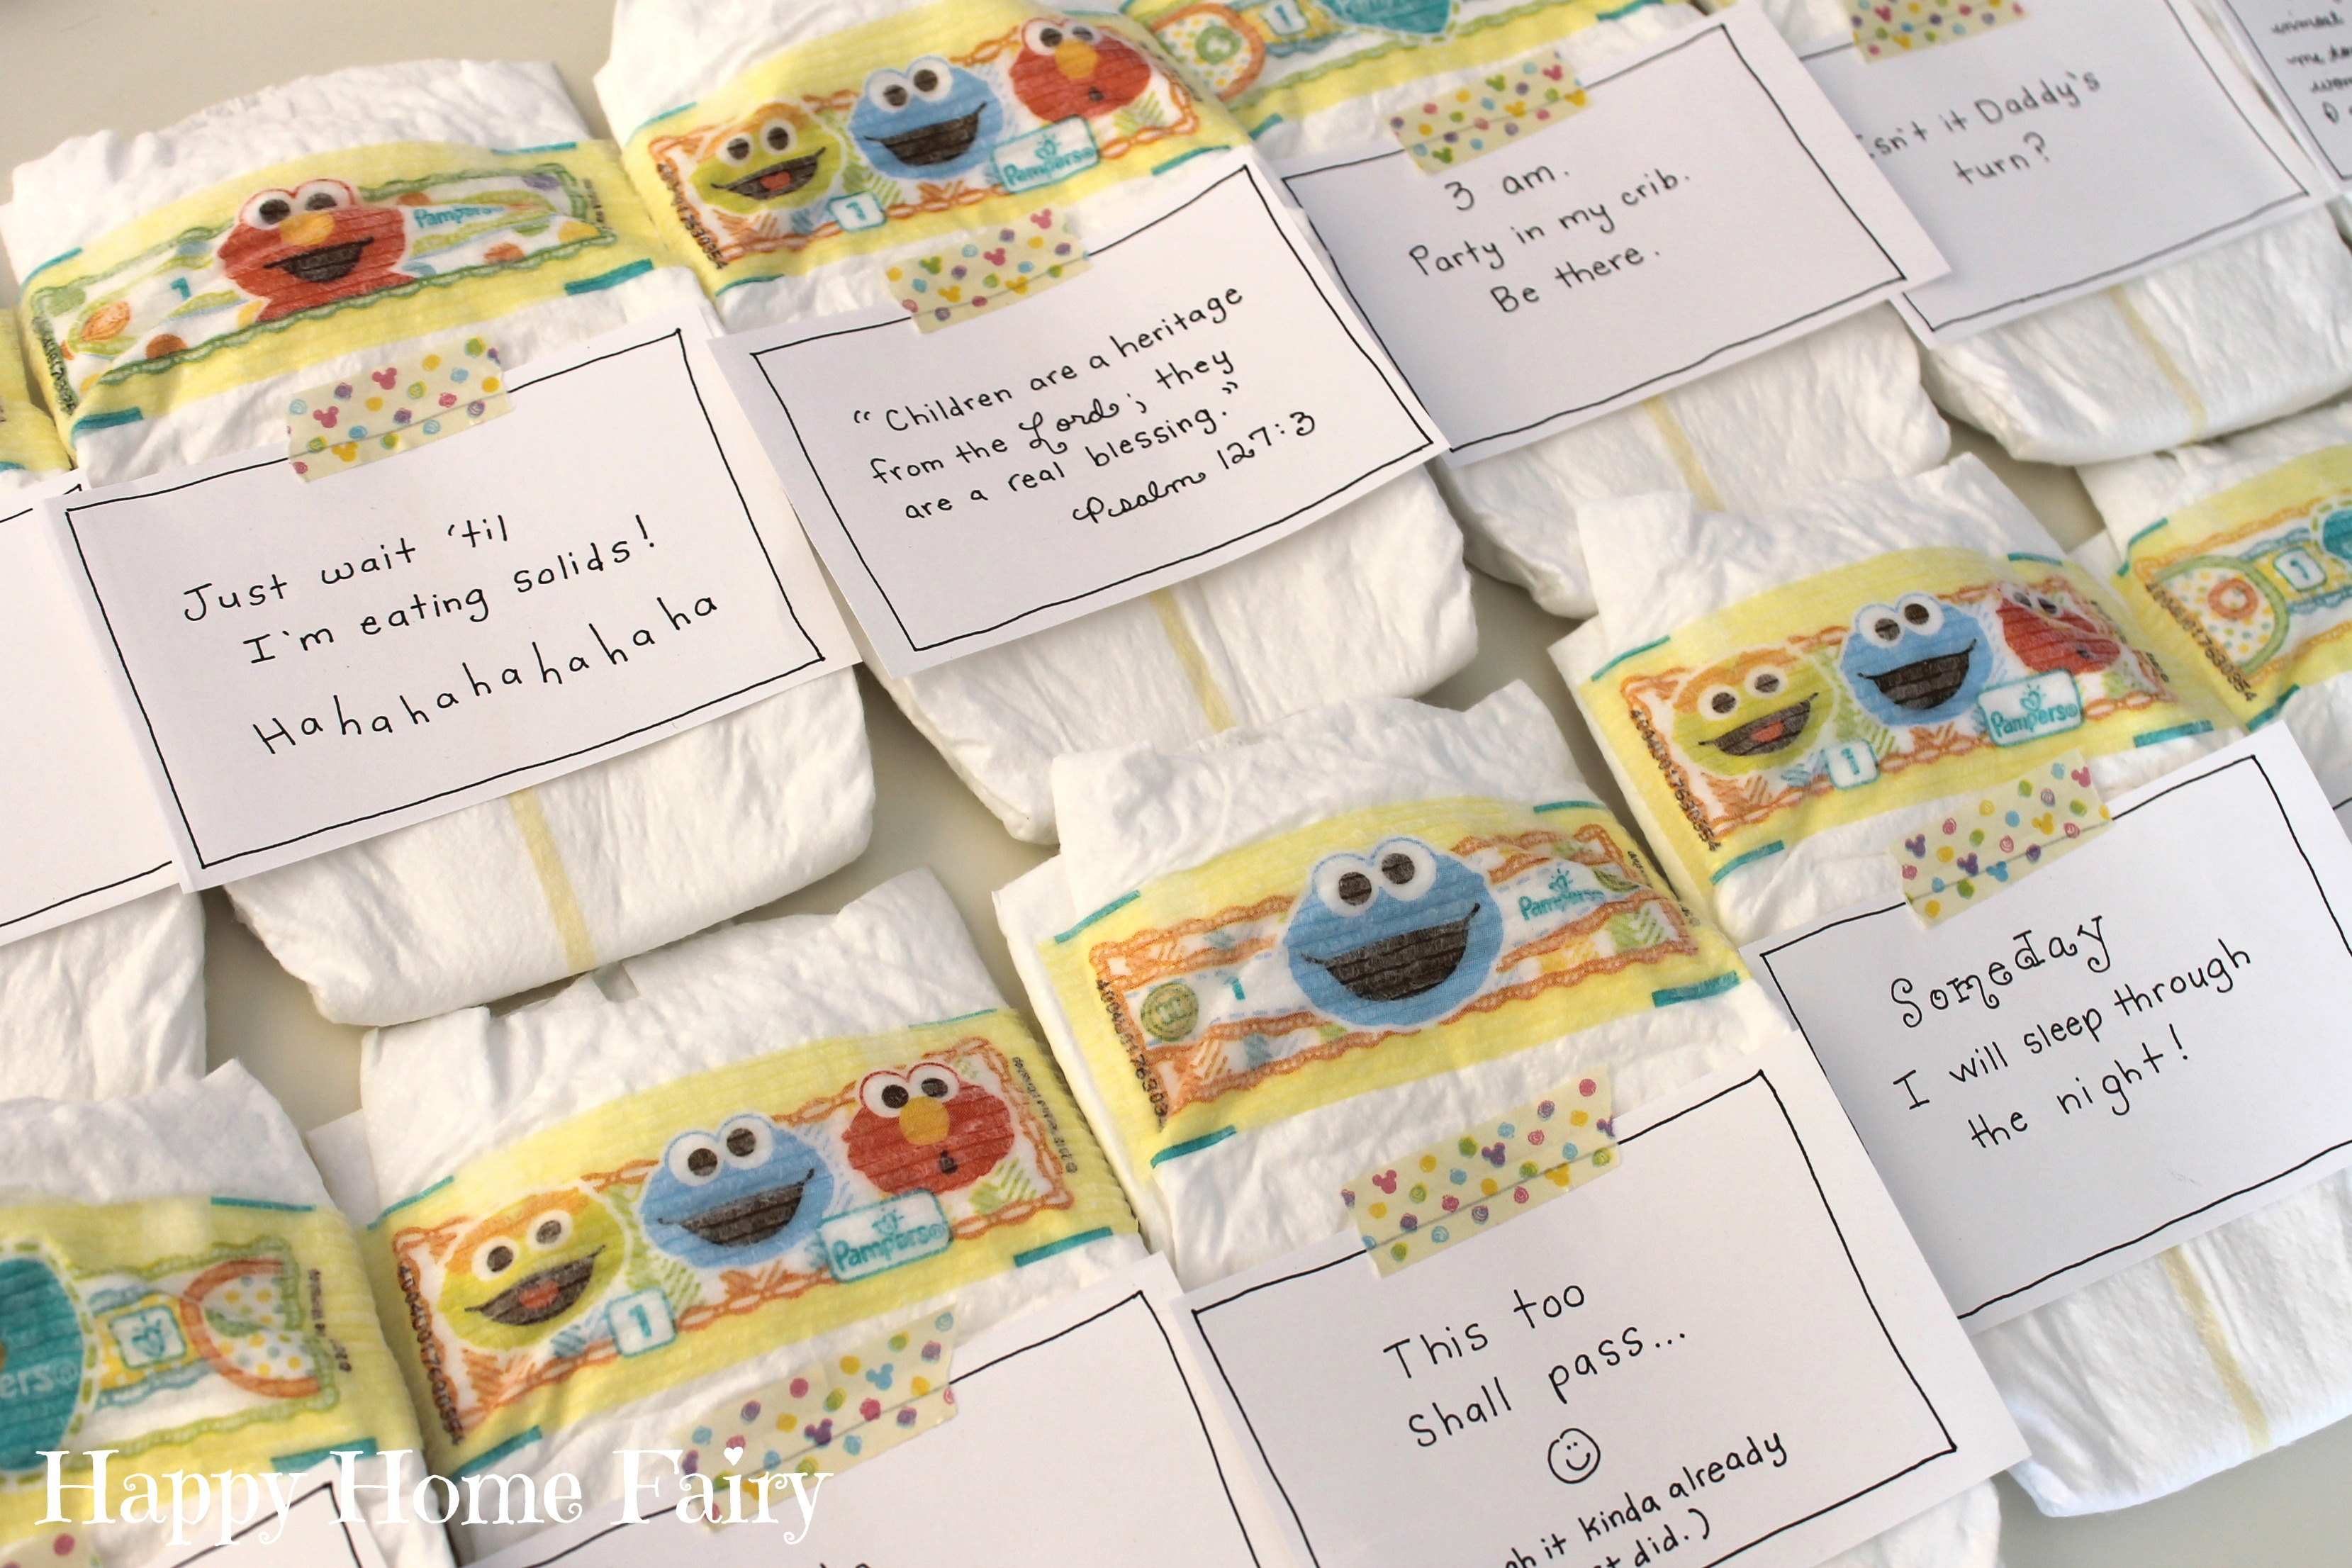 picture regarding Late Night Diaper Messages Free Printable known as Midnight Messages for Contemporary Mommies - Cost-free Printable! - Content